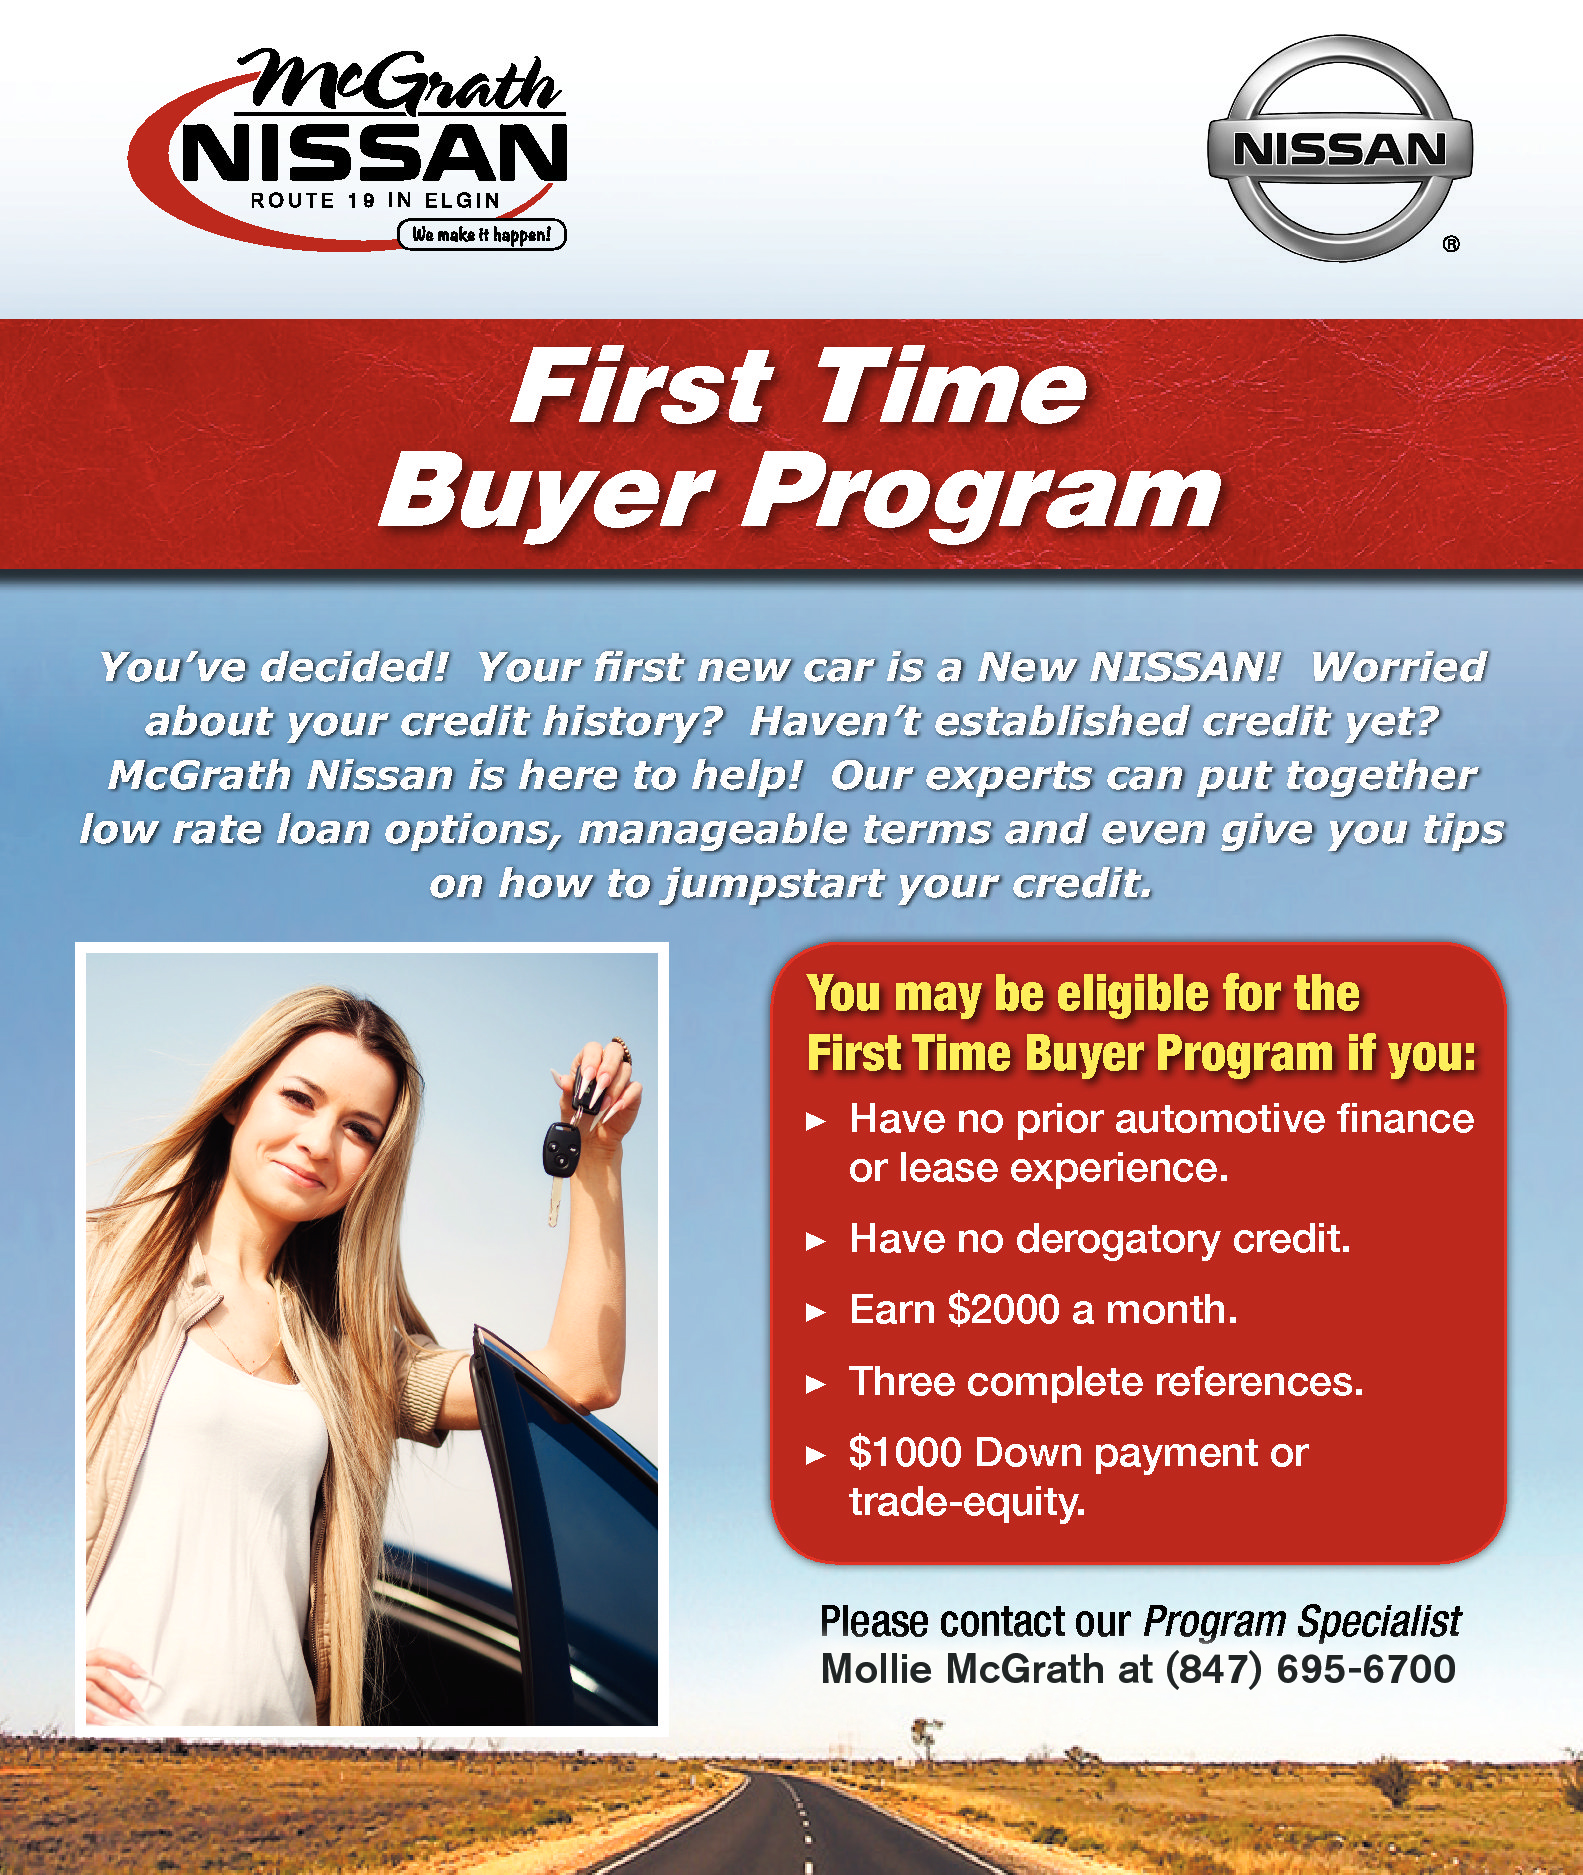 first time buyer program mcgrath nissan car shopping in elgin il. Black Bedroom Furniture Sets. Home Design Ideas